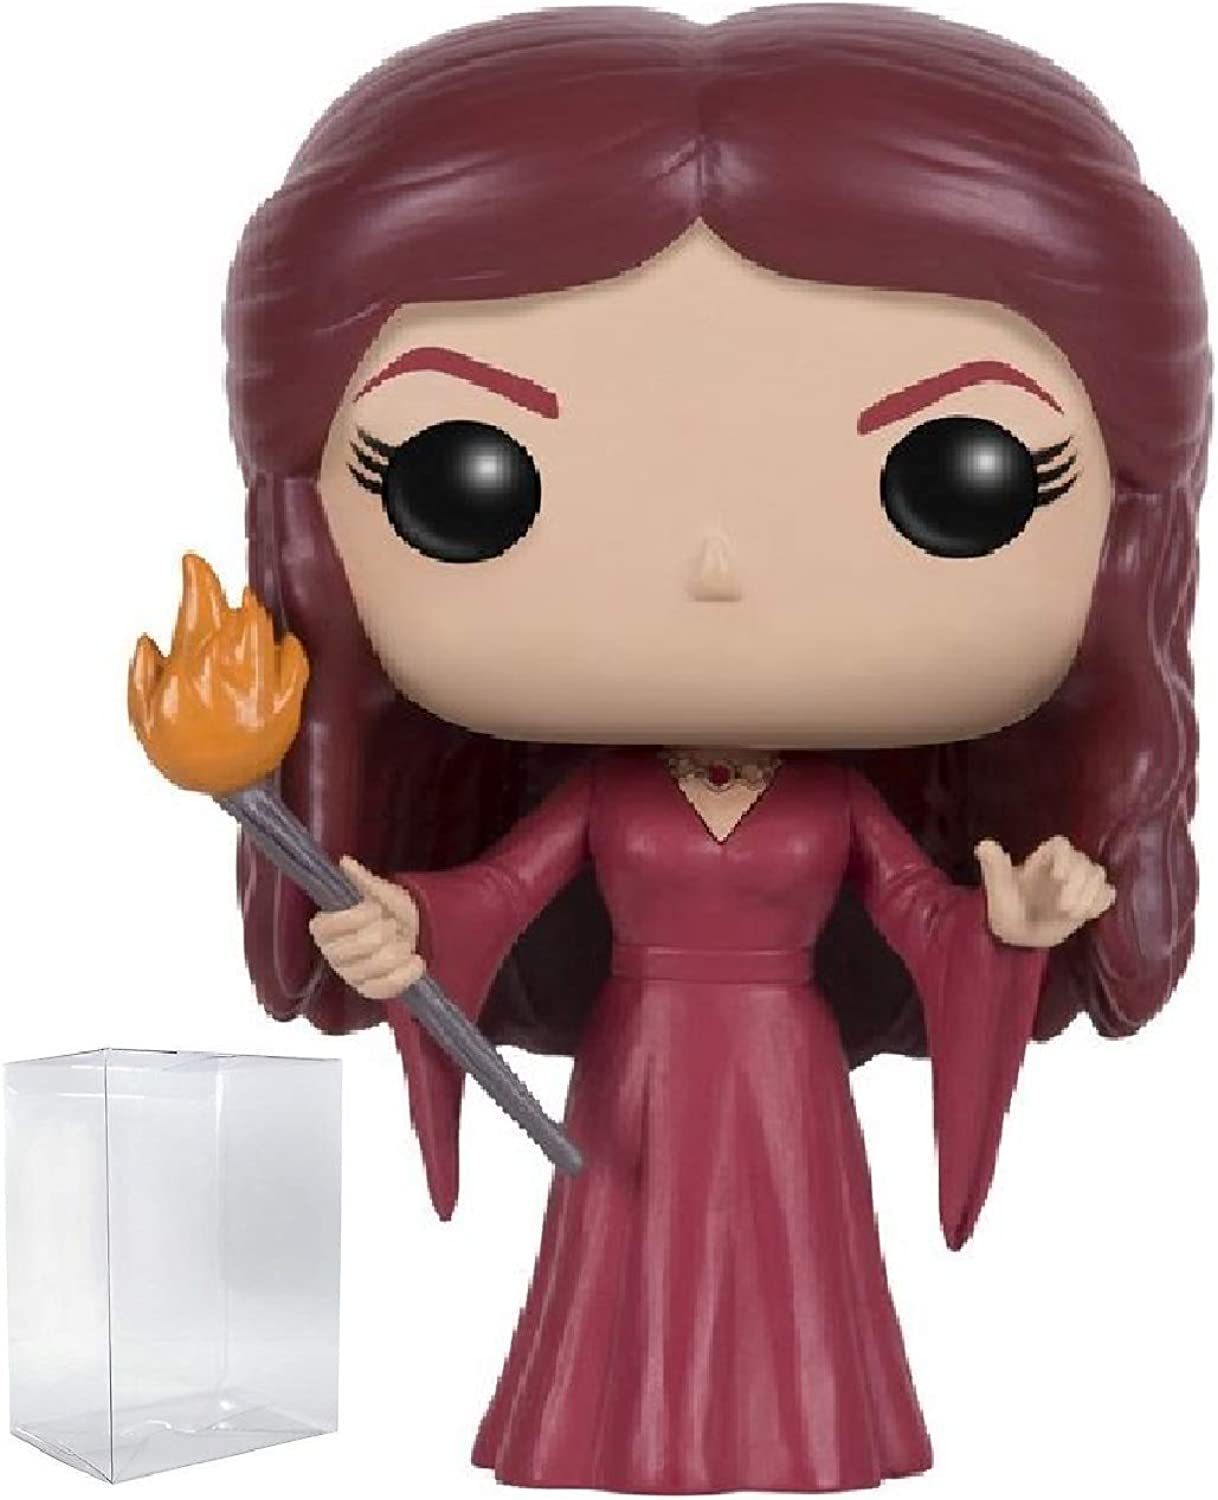 Game of Thrones  Melisandre Funko Pop  Vinyl Figure (Includes Compatible Pop Box Predector Case)